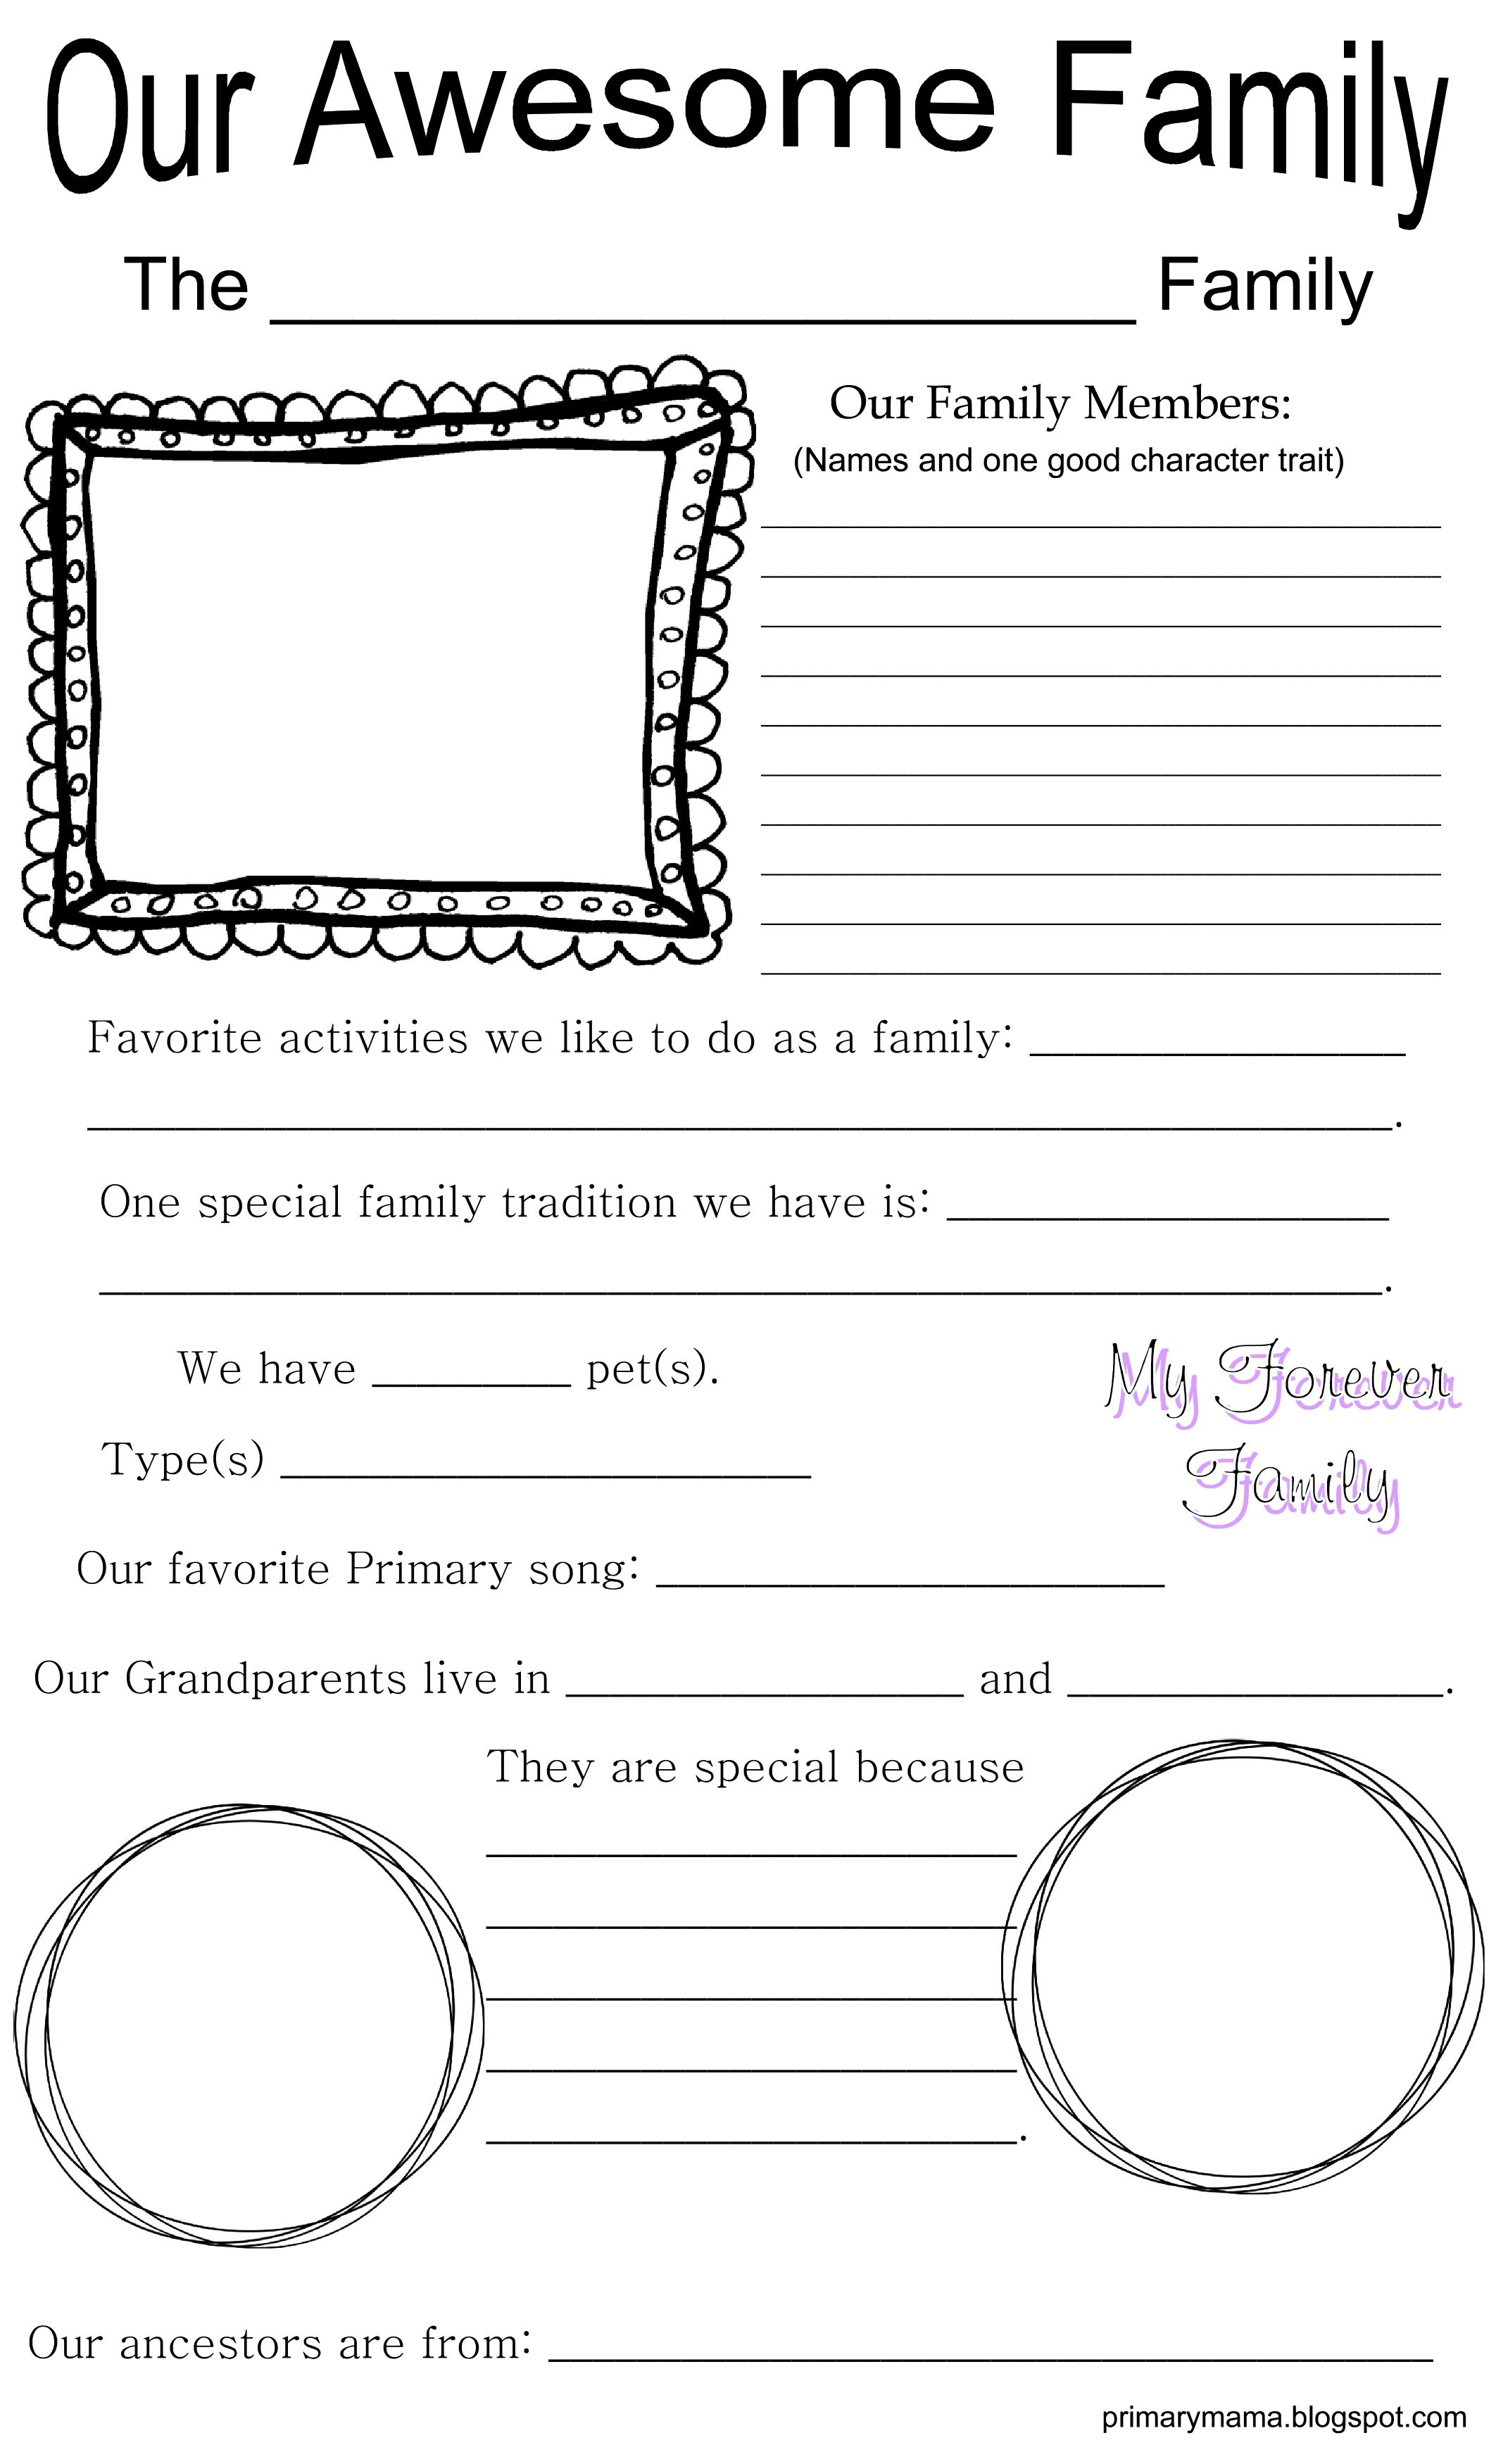 A family spotlight idea we will be doing in our ward for